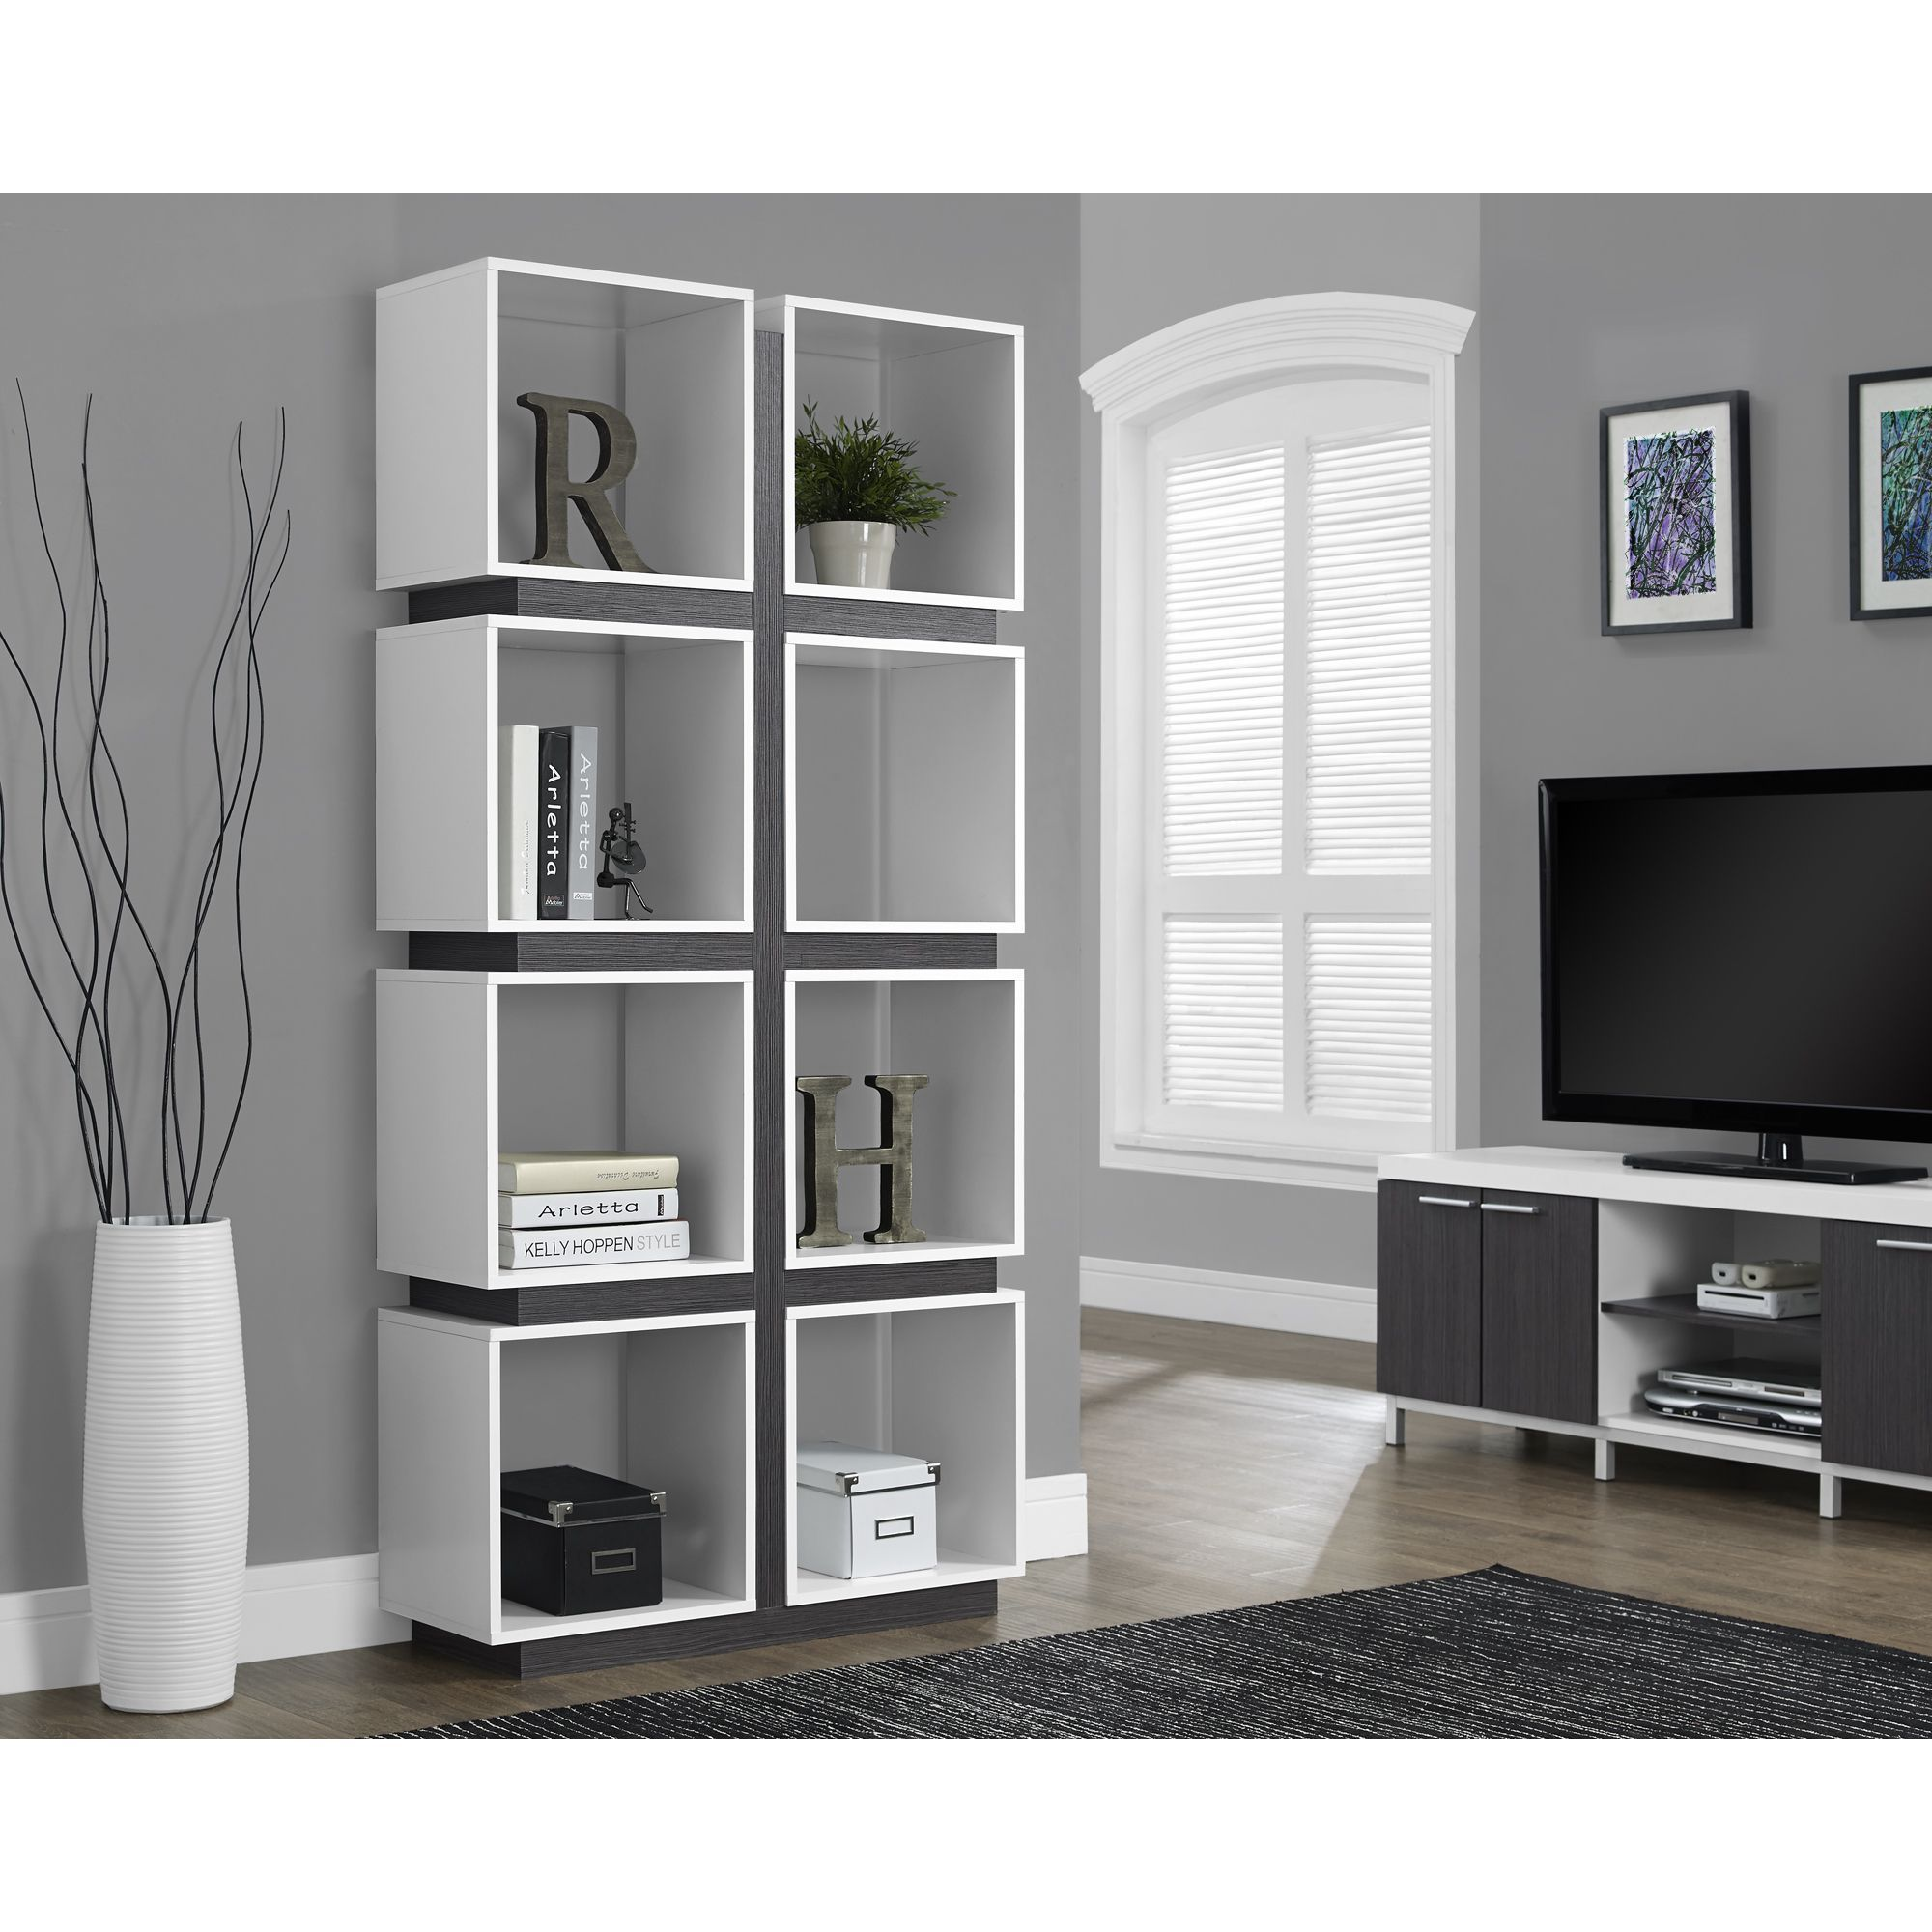 Give your home a modern art-deco look with this 8 cubic shelf bookcase.